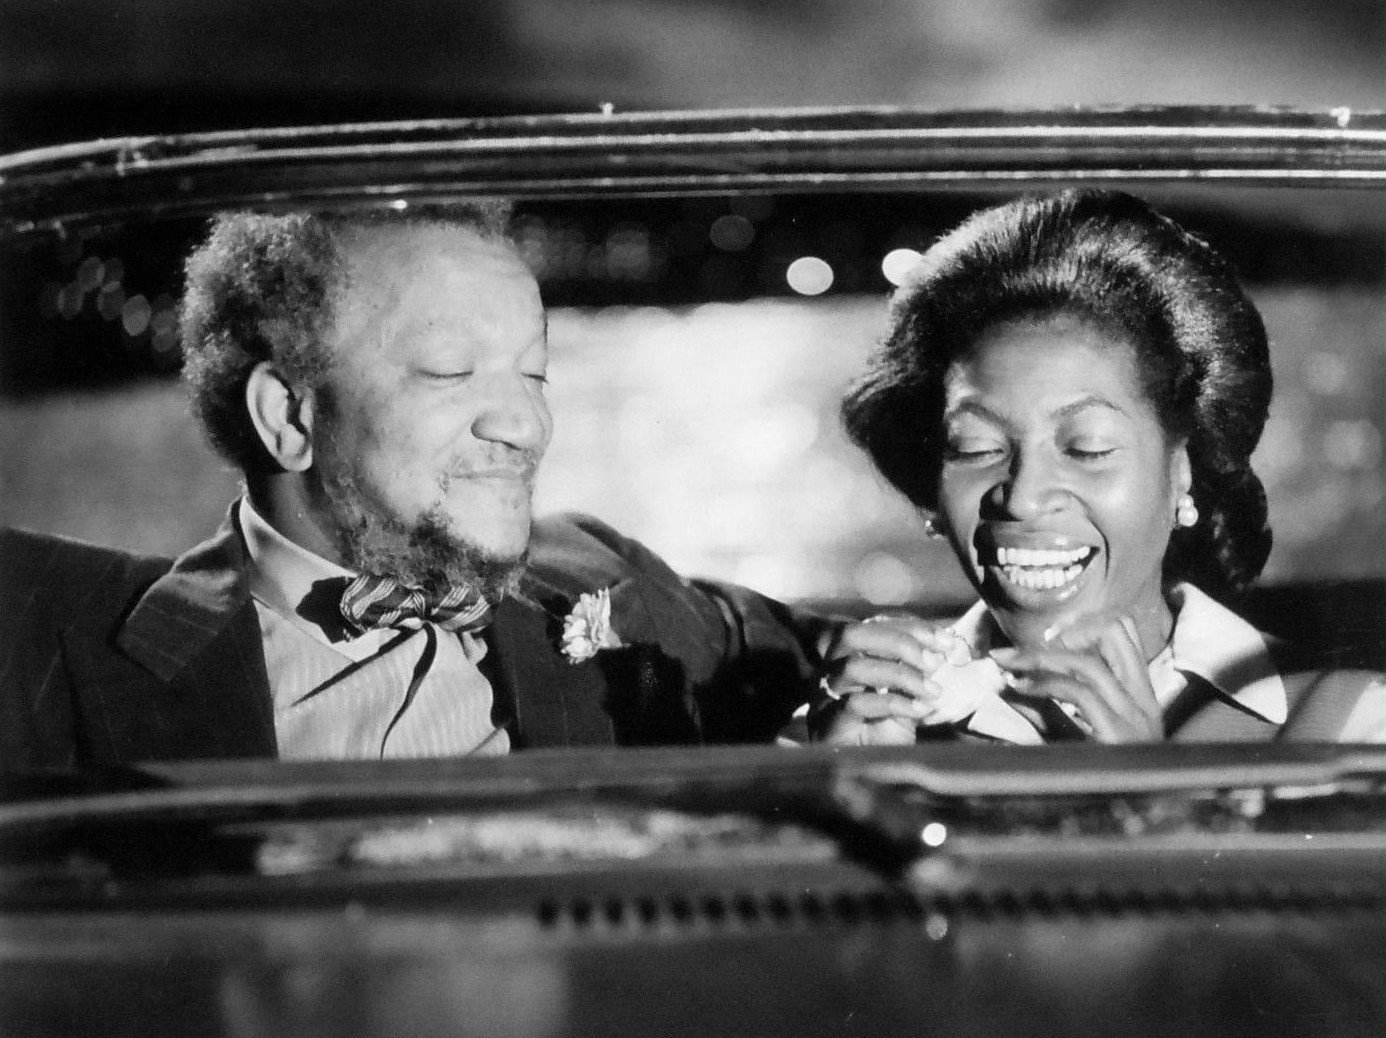 Redd Foxx as Fred Sanford and Lynne Hamilton as his girl friend, Donna, from Sanford and Son. | Source: Wikimedia Commons